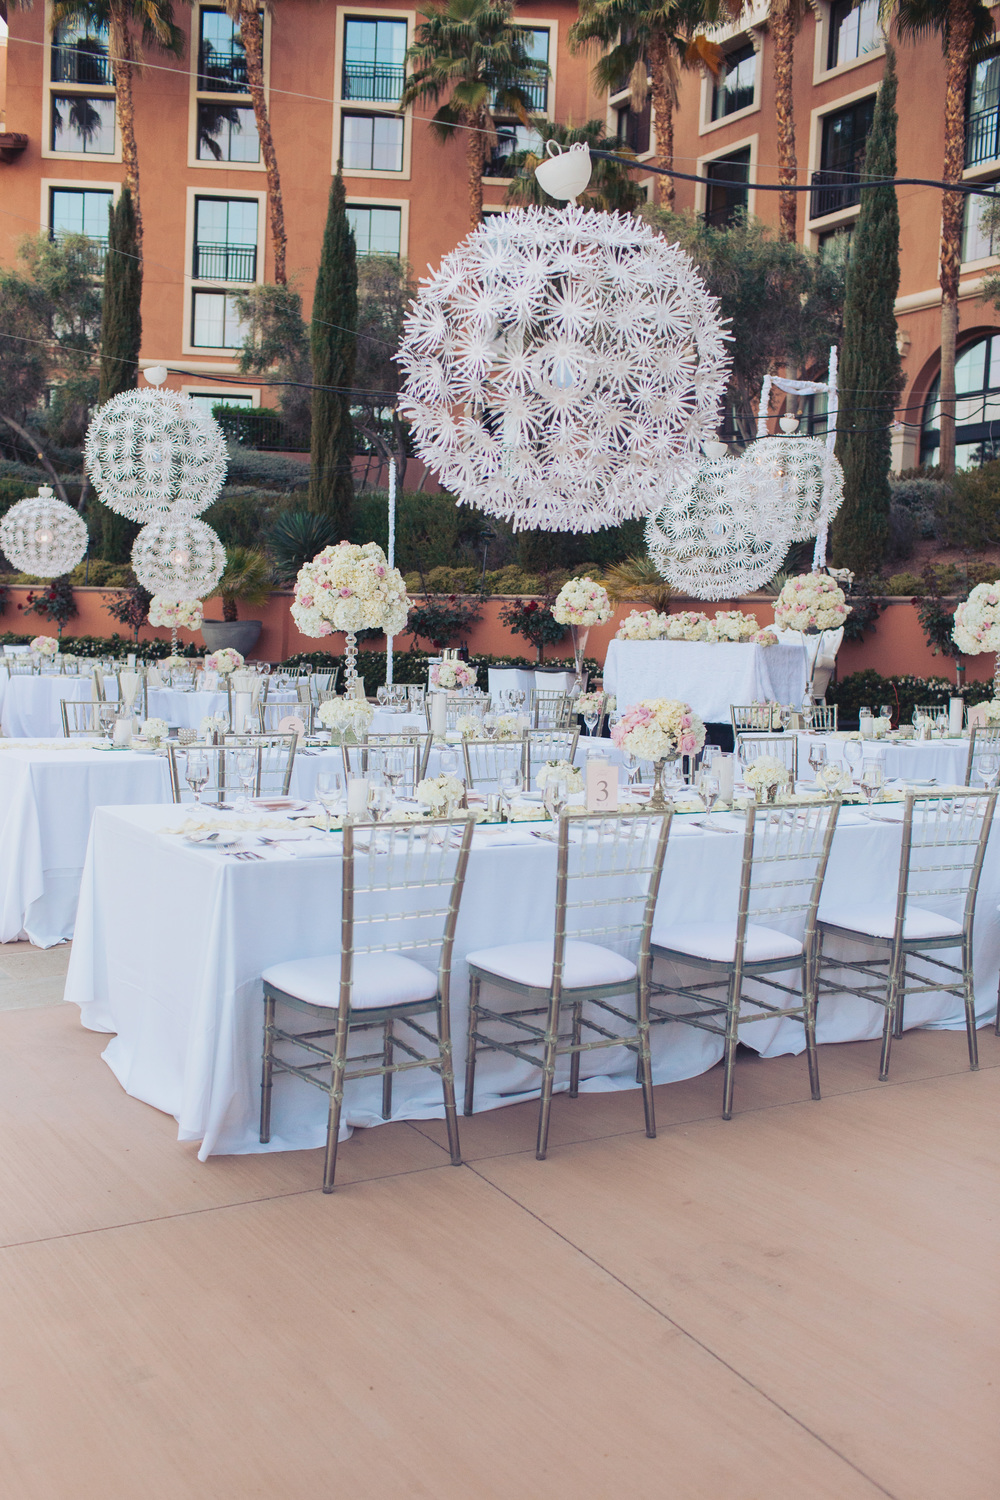 Long banquet tables were dressed with White Duping linens topped with mirrored table runners, high and low white and blush centerpieces, and scattered candles.  Lucite Chiavari Chairs with ivory cushions surrounded the tables, and pashminas were placed for the ladies if they felt a chill.  Las Vegas Wedding Planner Andrea Eppolito  |  Wedding at Lake Las Vegas  | White and Blu  sh and Grey Wedding